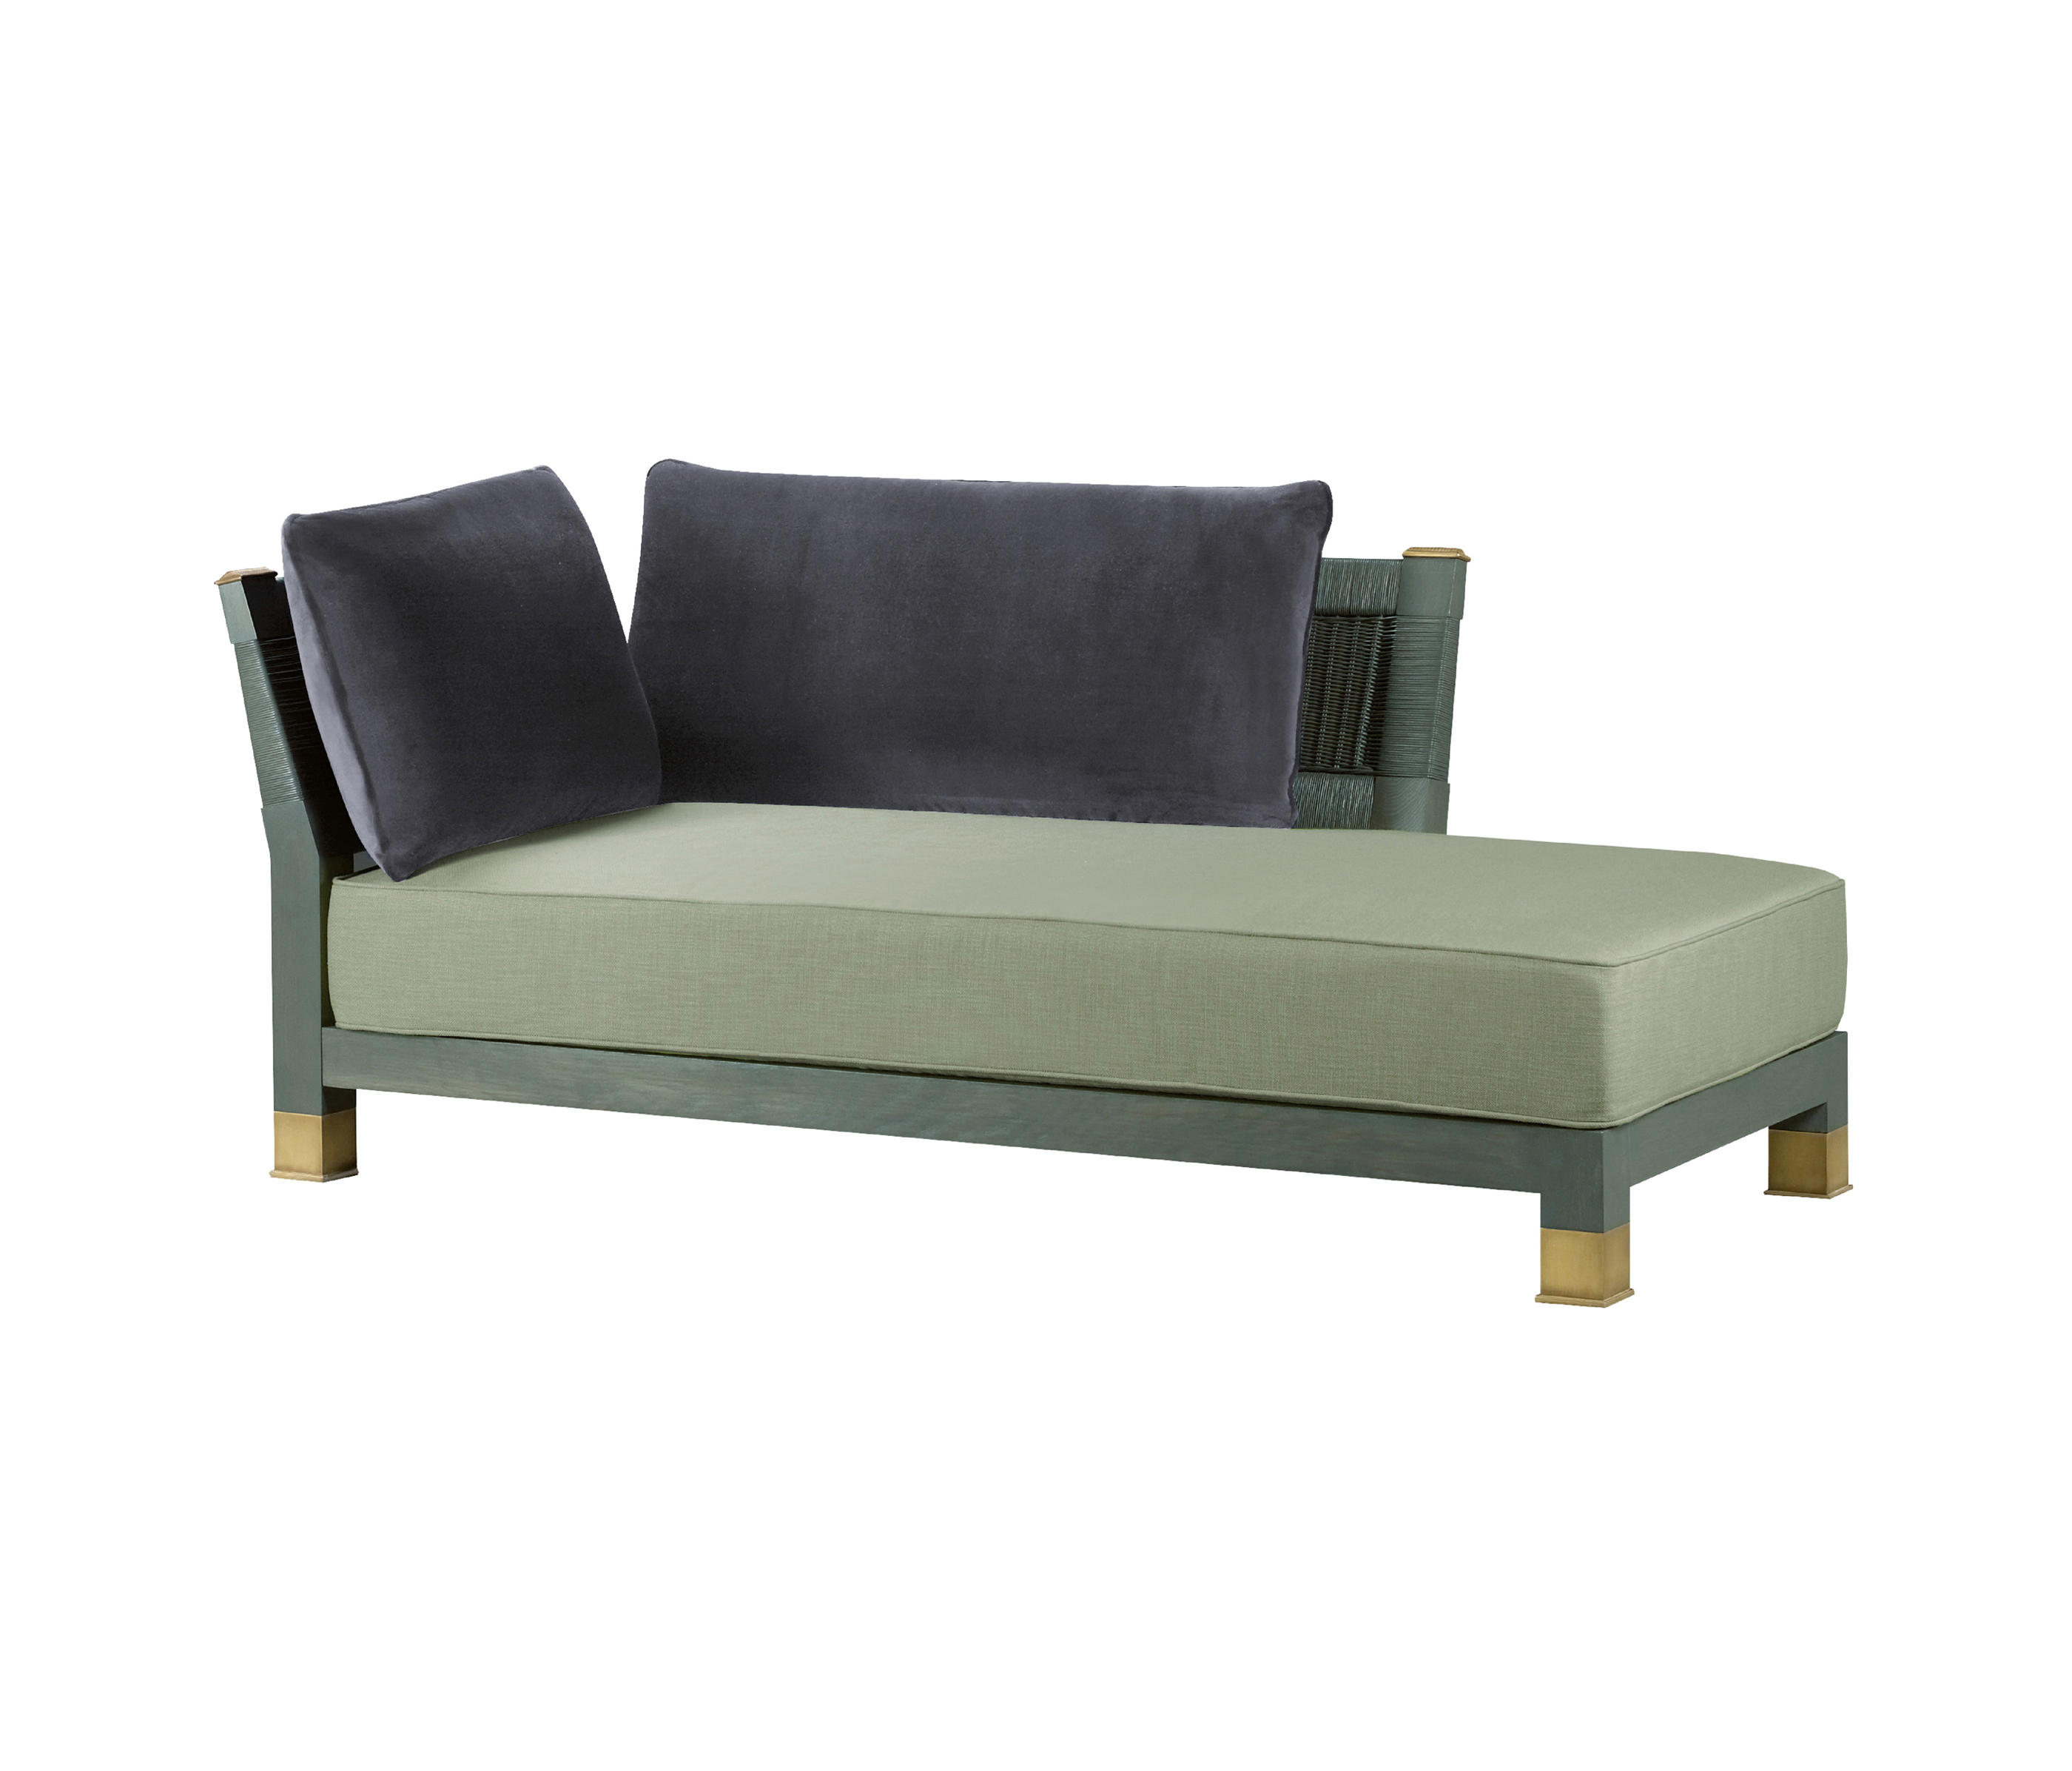 Chaise longue sofa 485 forum sofa with chaise longue by for Chaise longue sofas